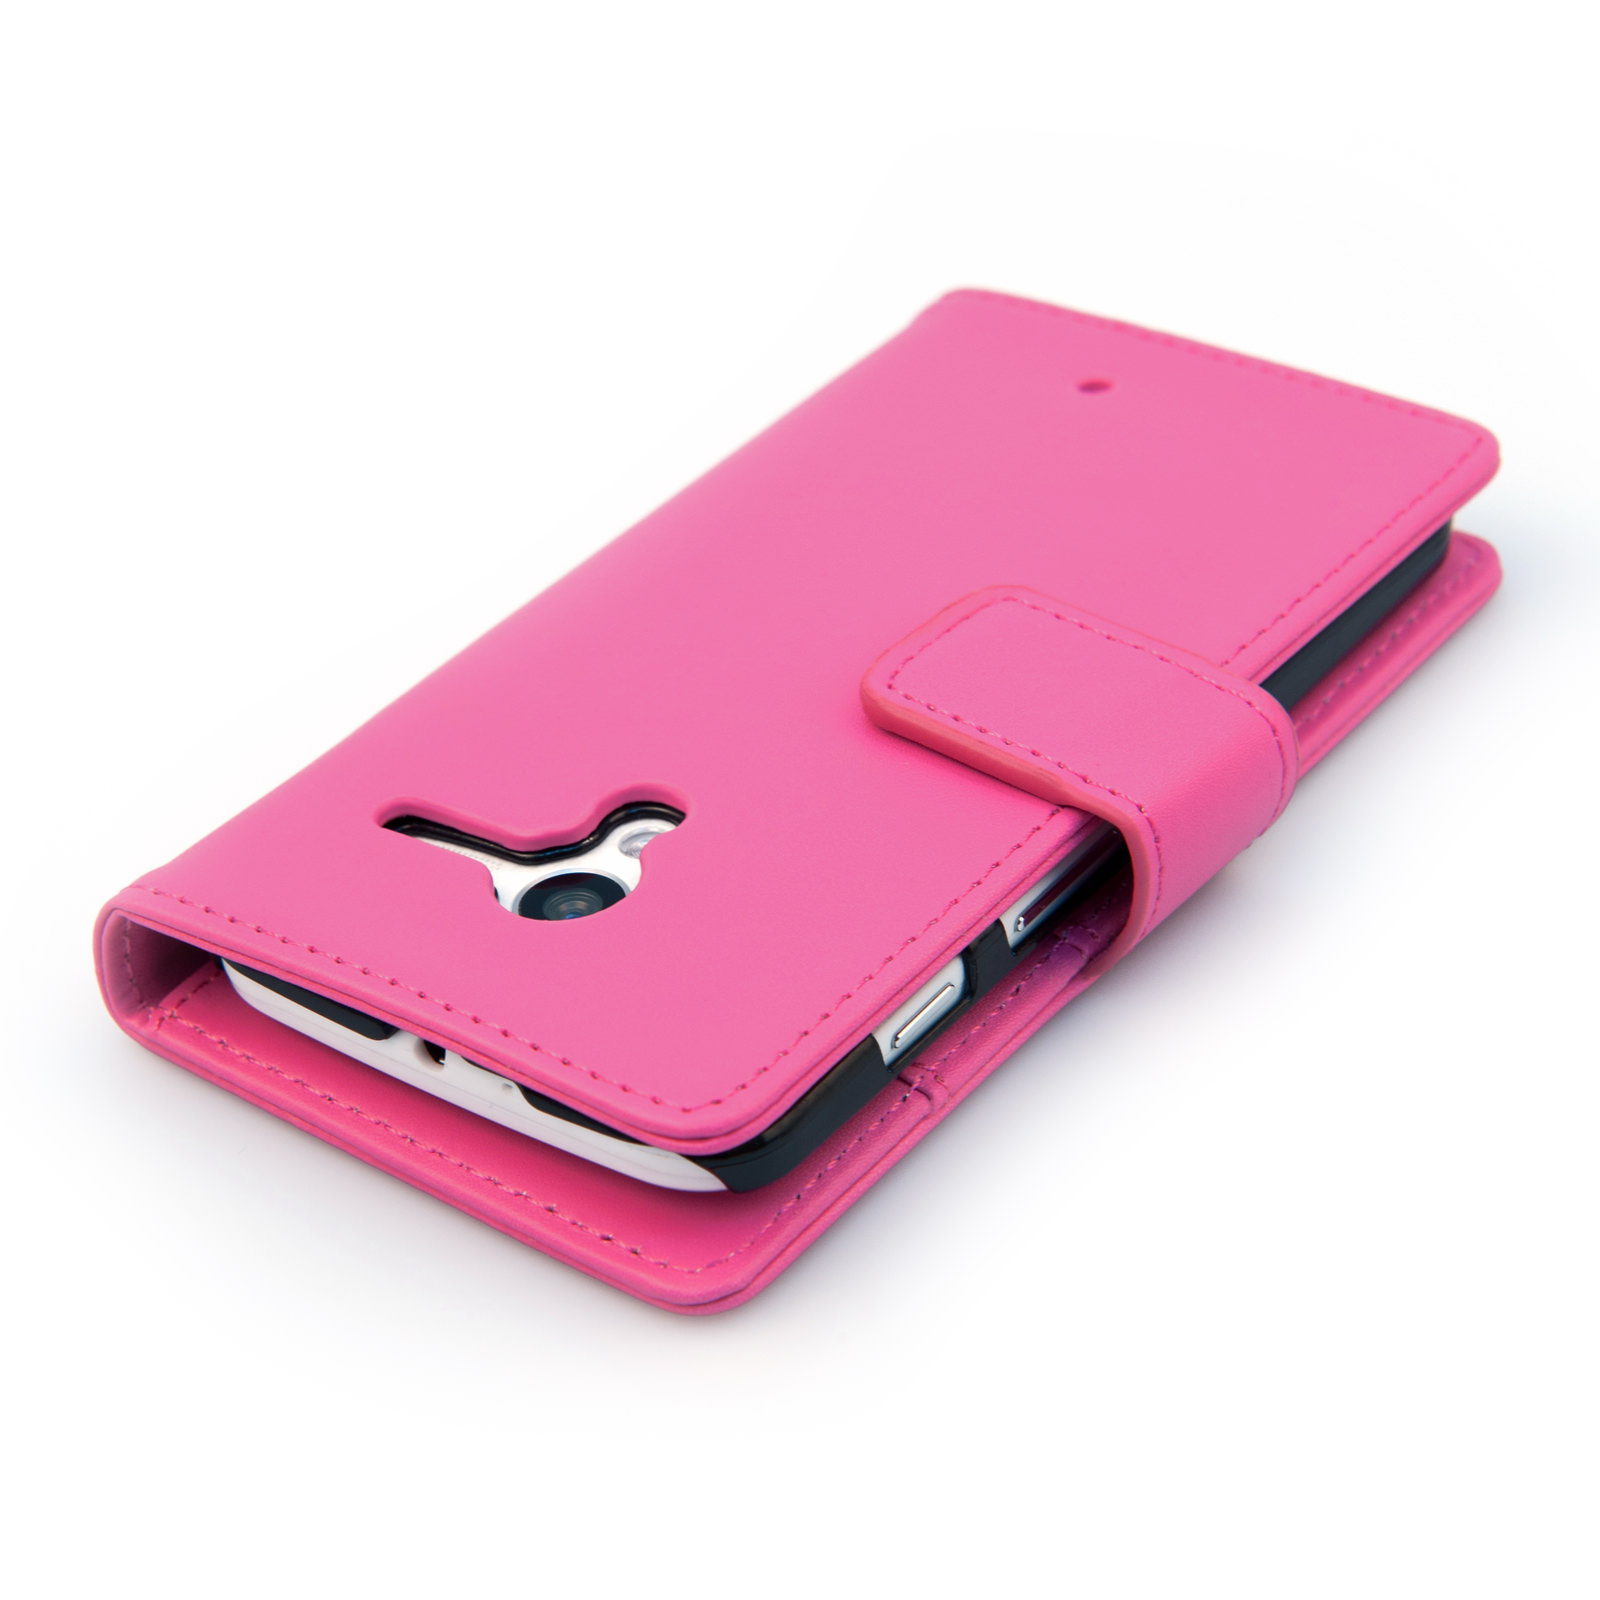 YouSave Motorola Moto X Leather-Effect Wallet Case - Hot Pink